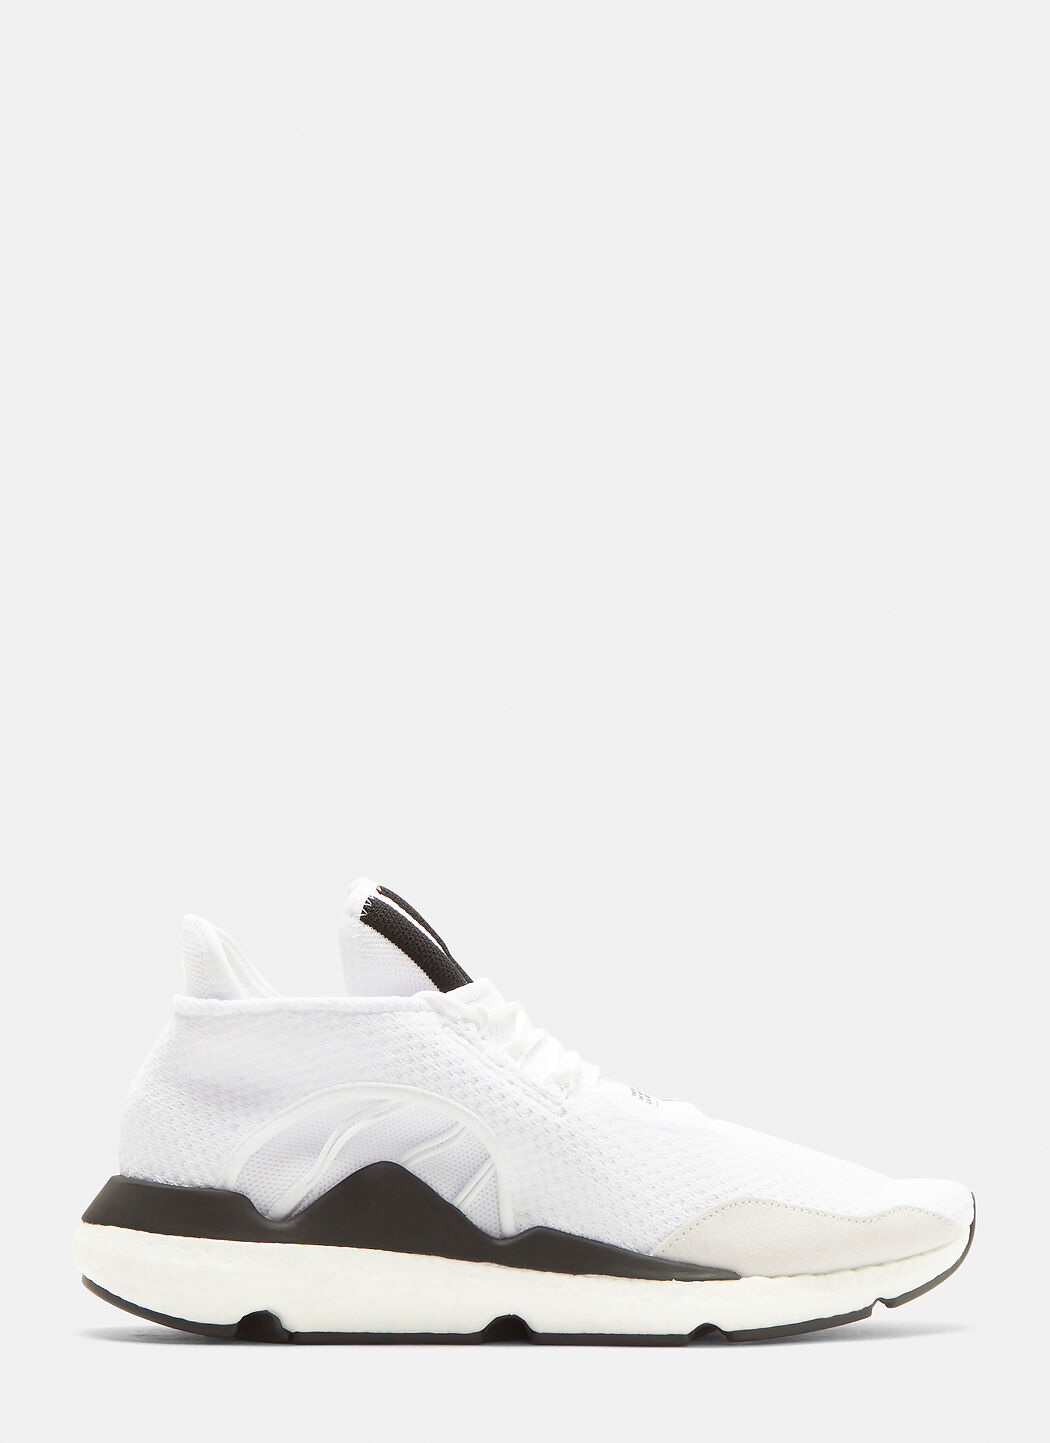 10 Fave Monochromatic and Minimalist Sneakers | Minimalist